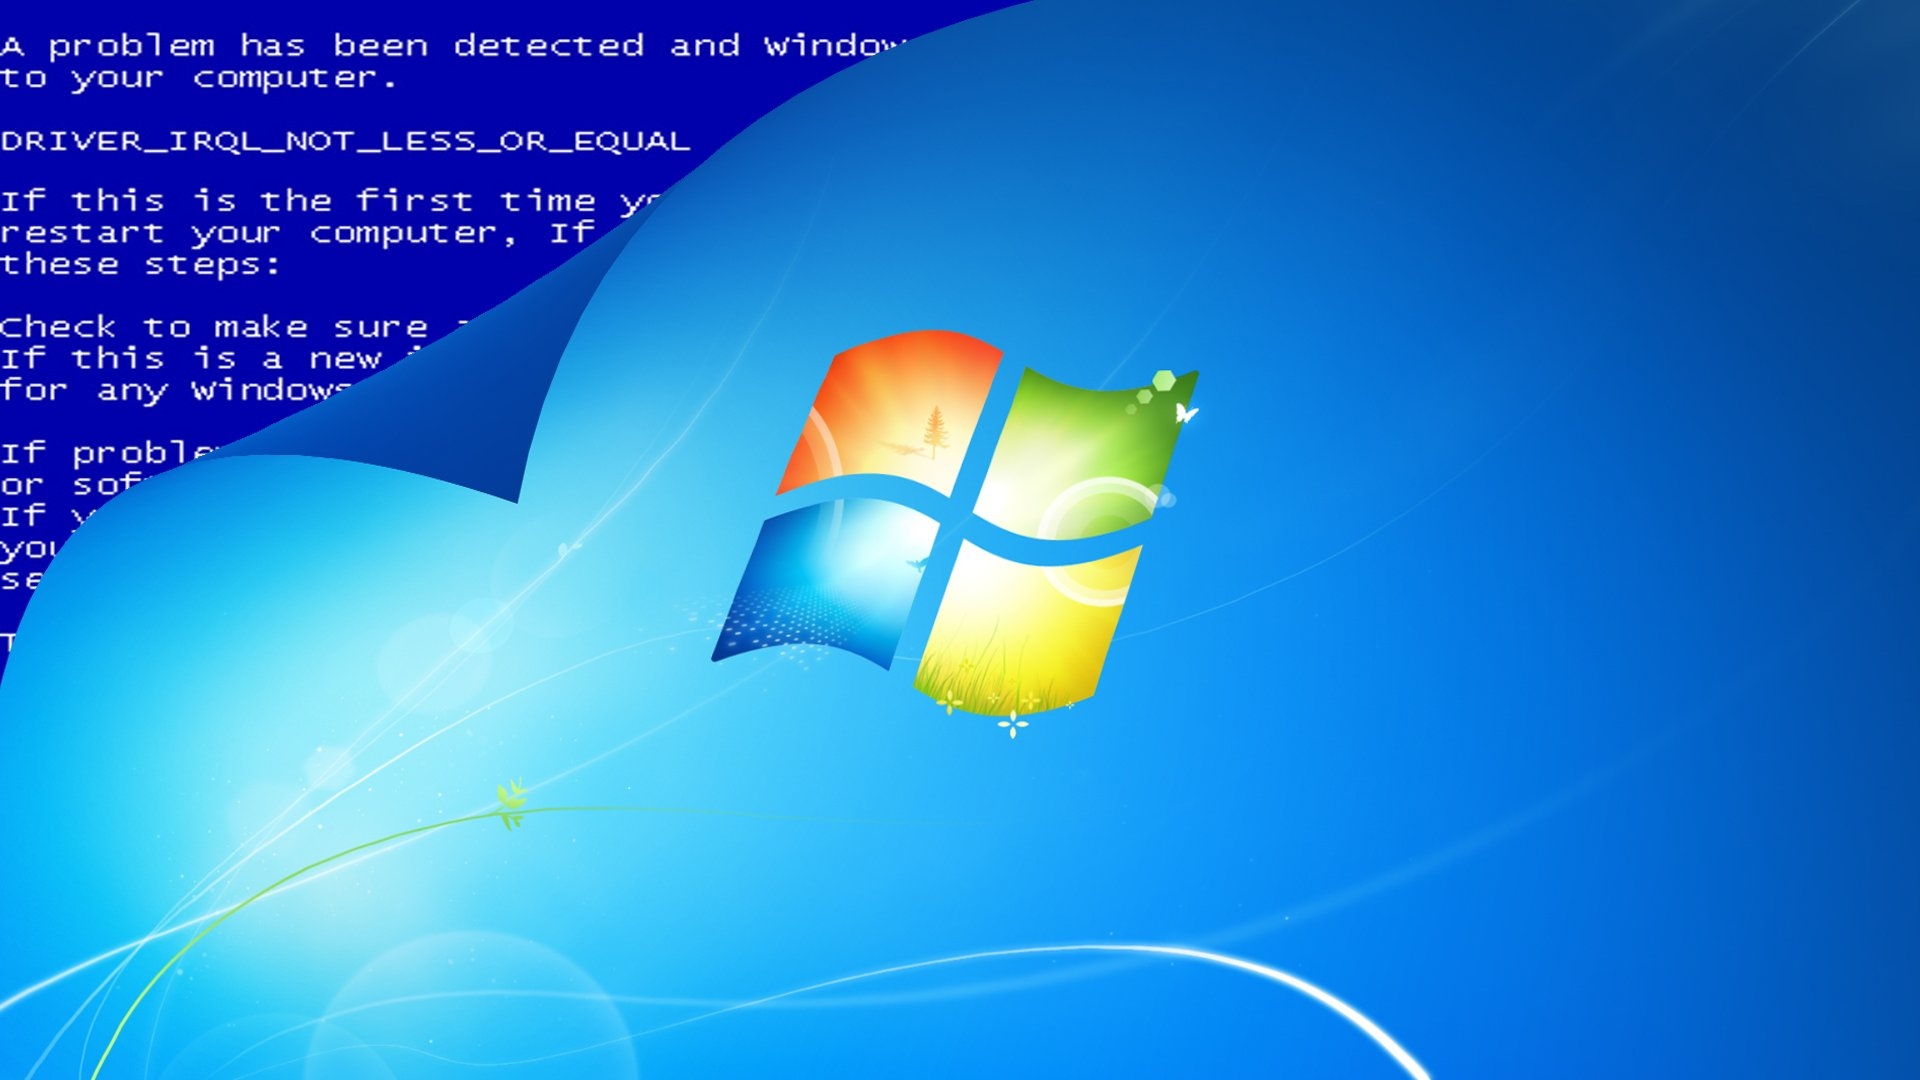 Windows 7 background image size - Download Funny Windows 8 Wallpaper 1920x1080 23125 Full Size